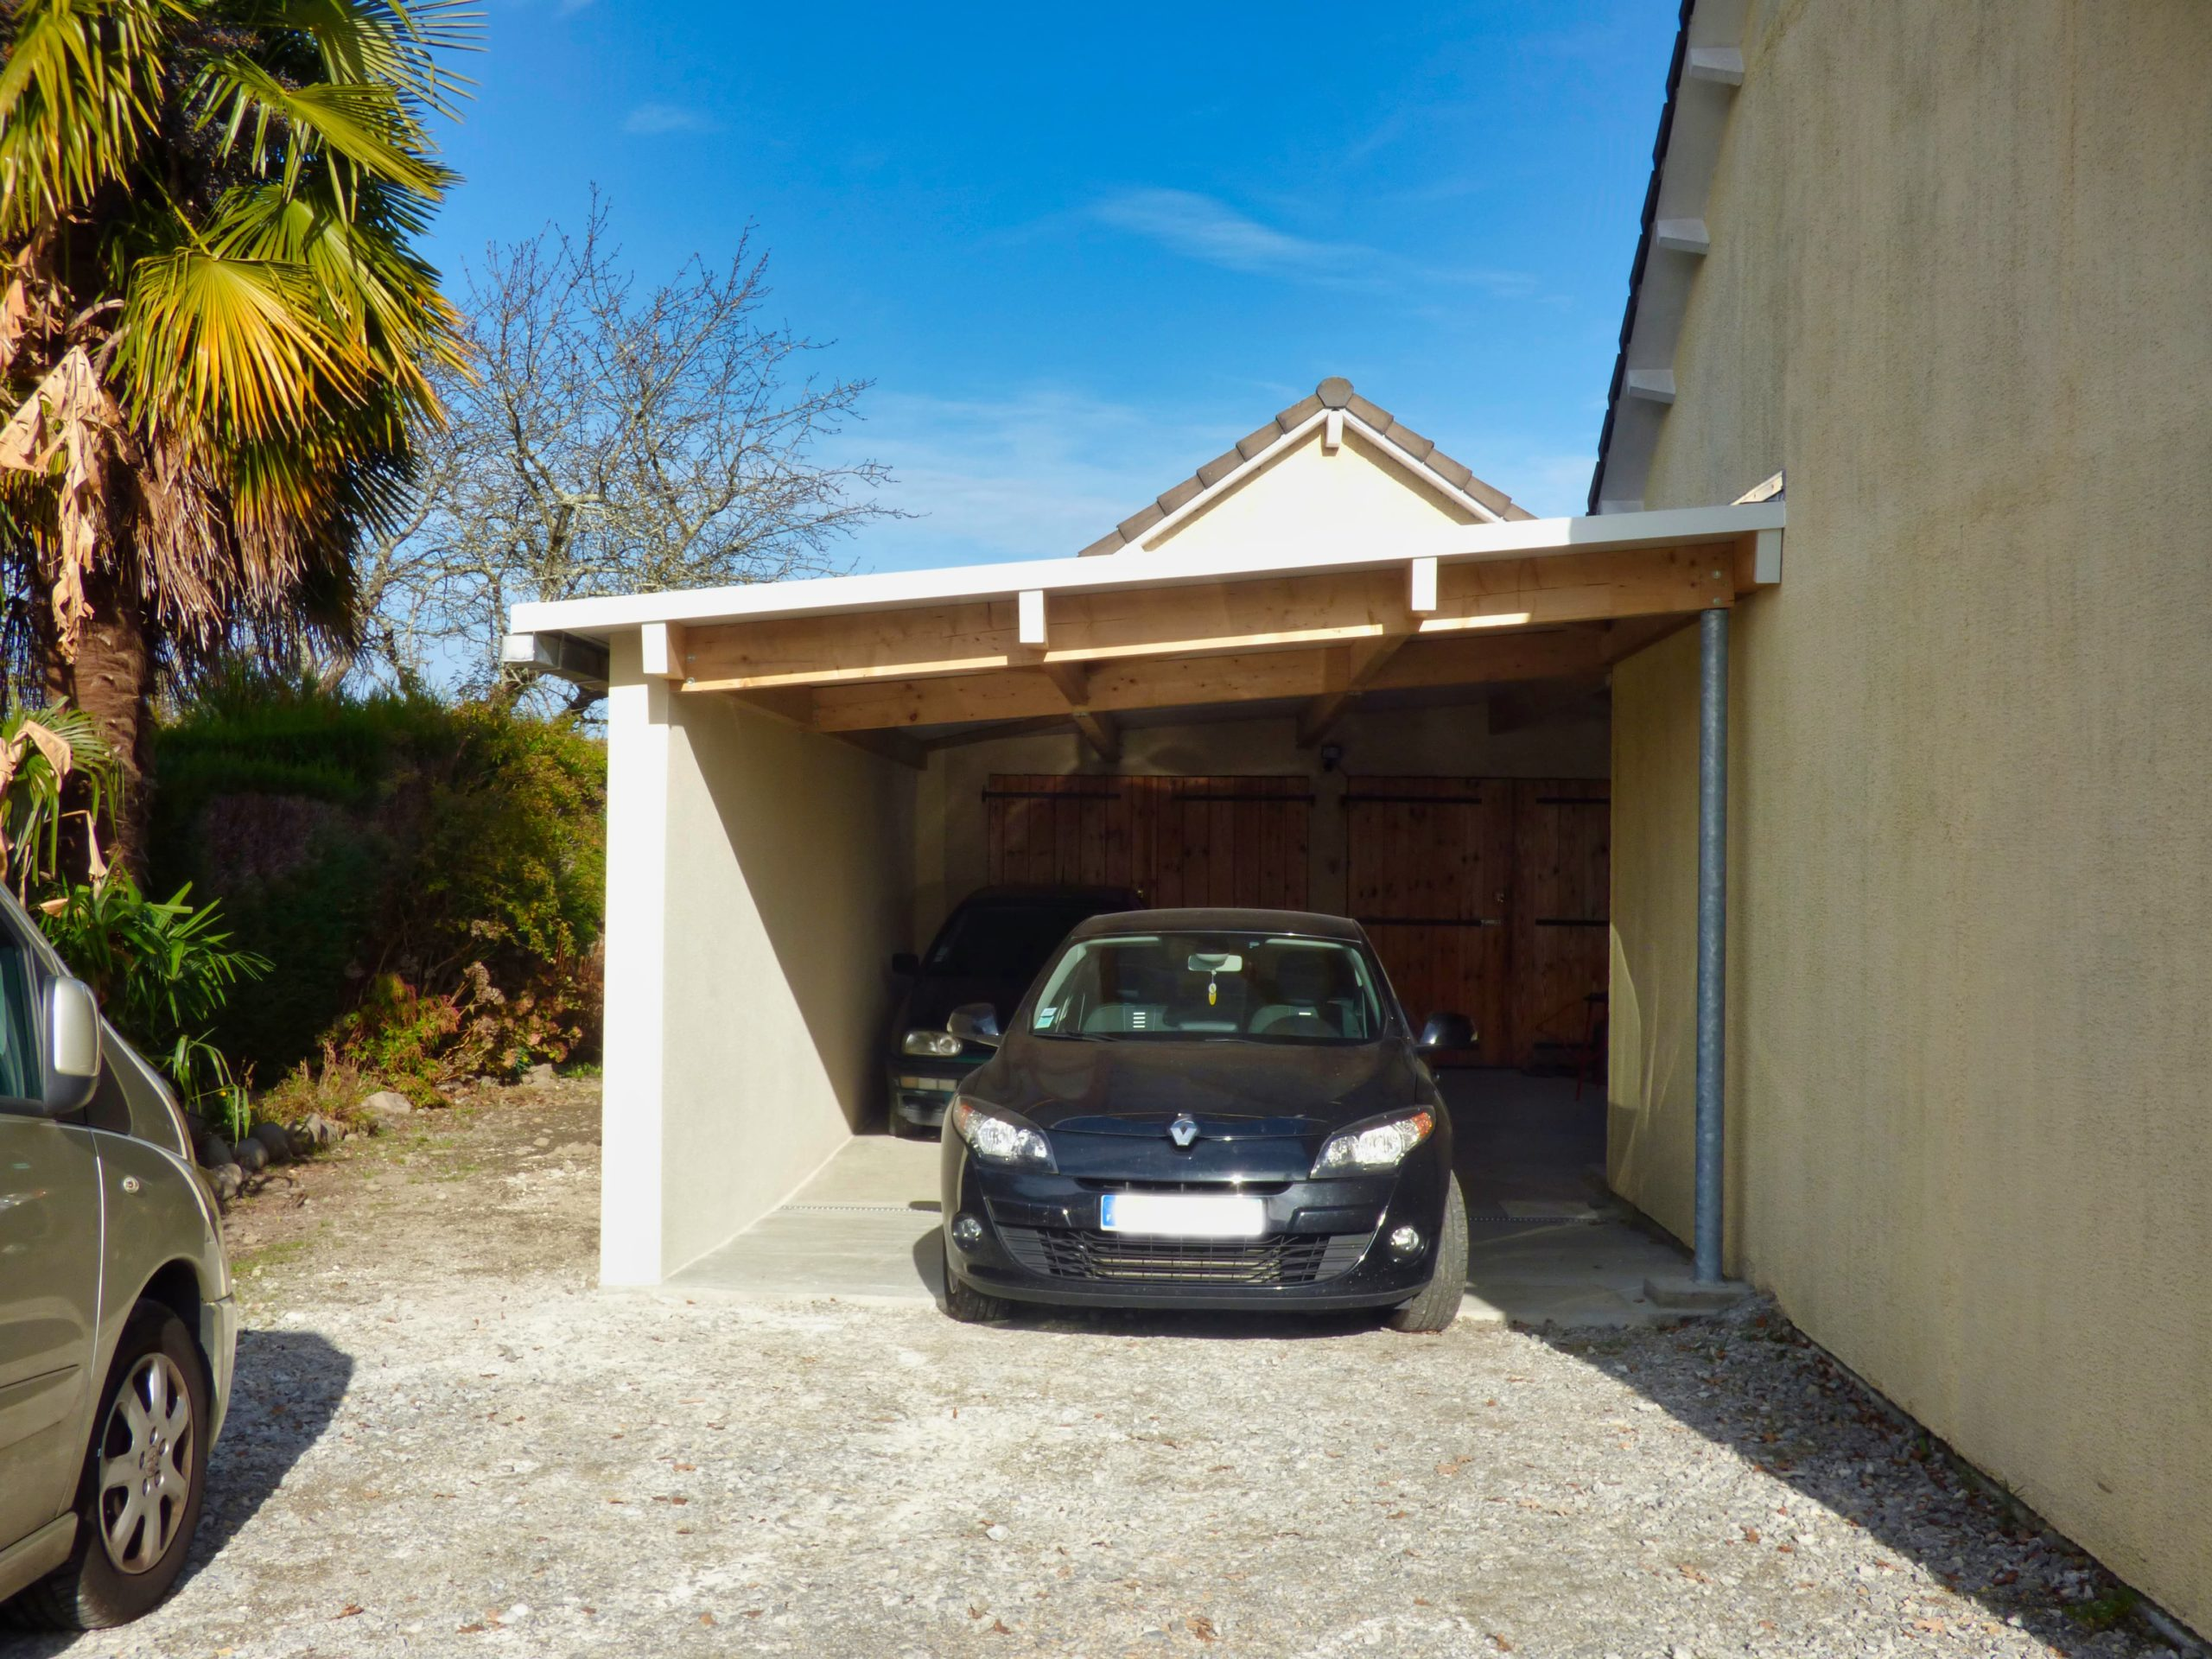 Garage extension terminée